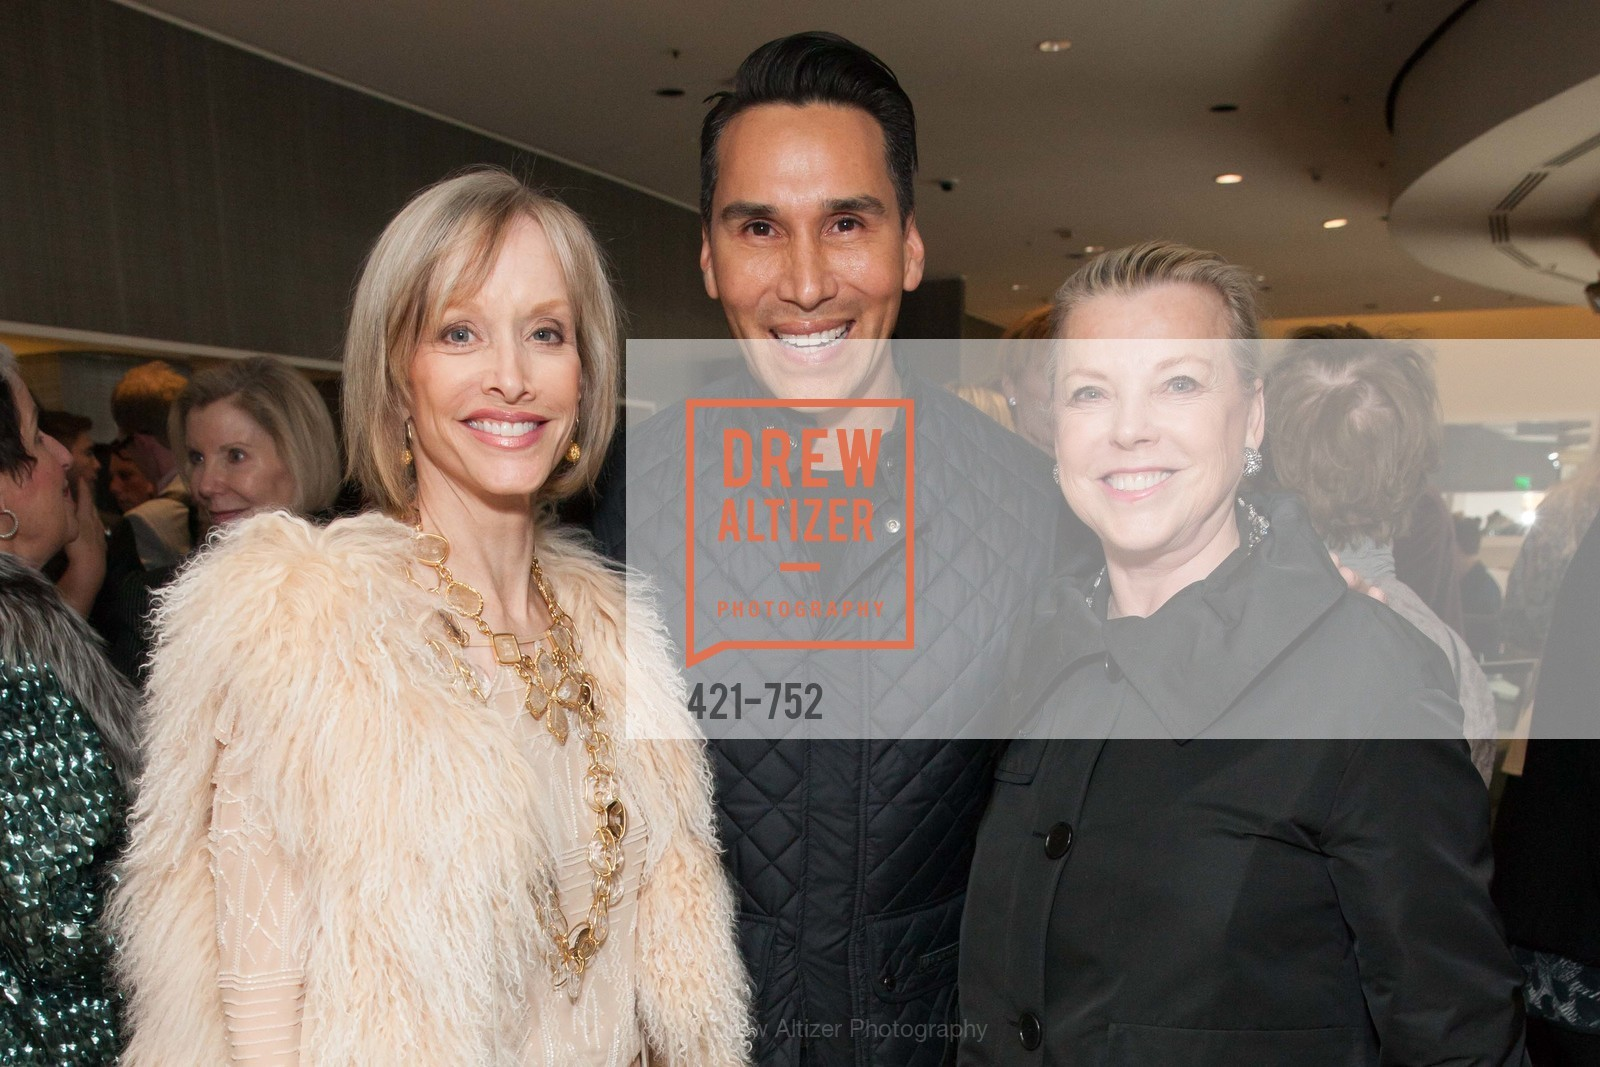 OJ Shansby, Jesse Garza, Jeanne Lawrence, Electric Fashion Book Signing with Christine Suppes & Ken Downing at THE ROTUNDA, NEIMAN MARCUS, Neiman Marcus, Rotunda, May 27th, 2015,Drew Altizer, Drew Altizer Photography, full-service agency, private events, San Francisco photographer, photographer california